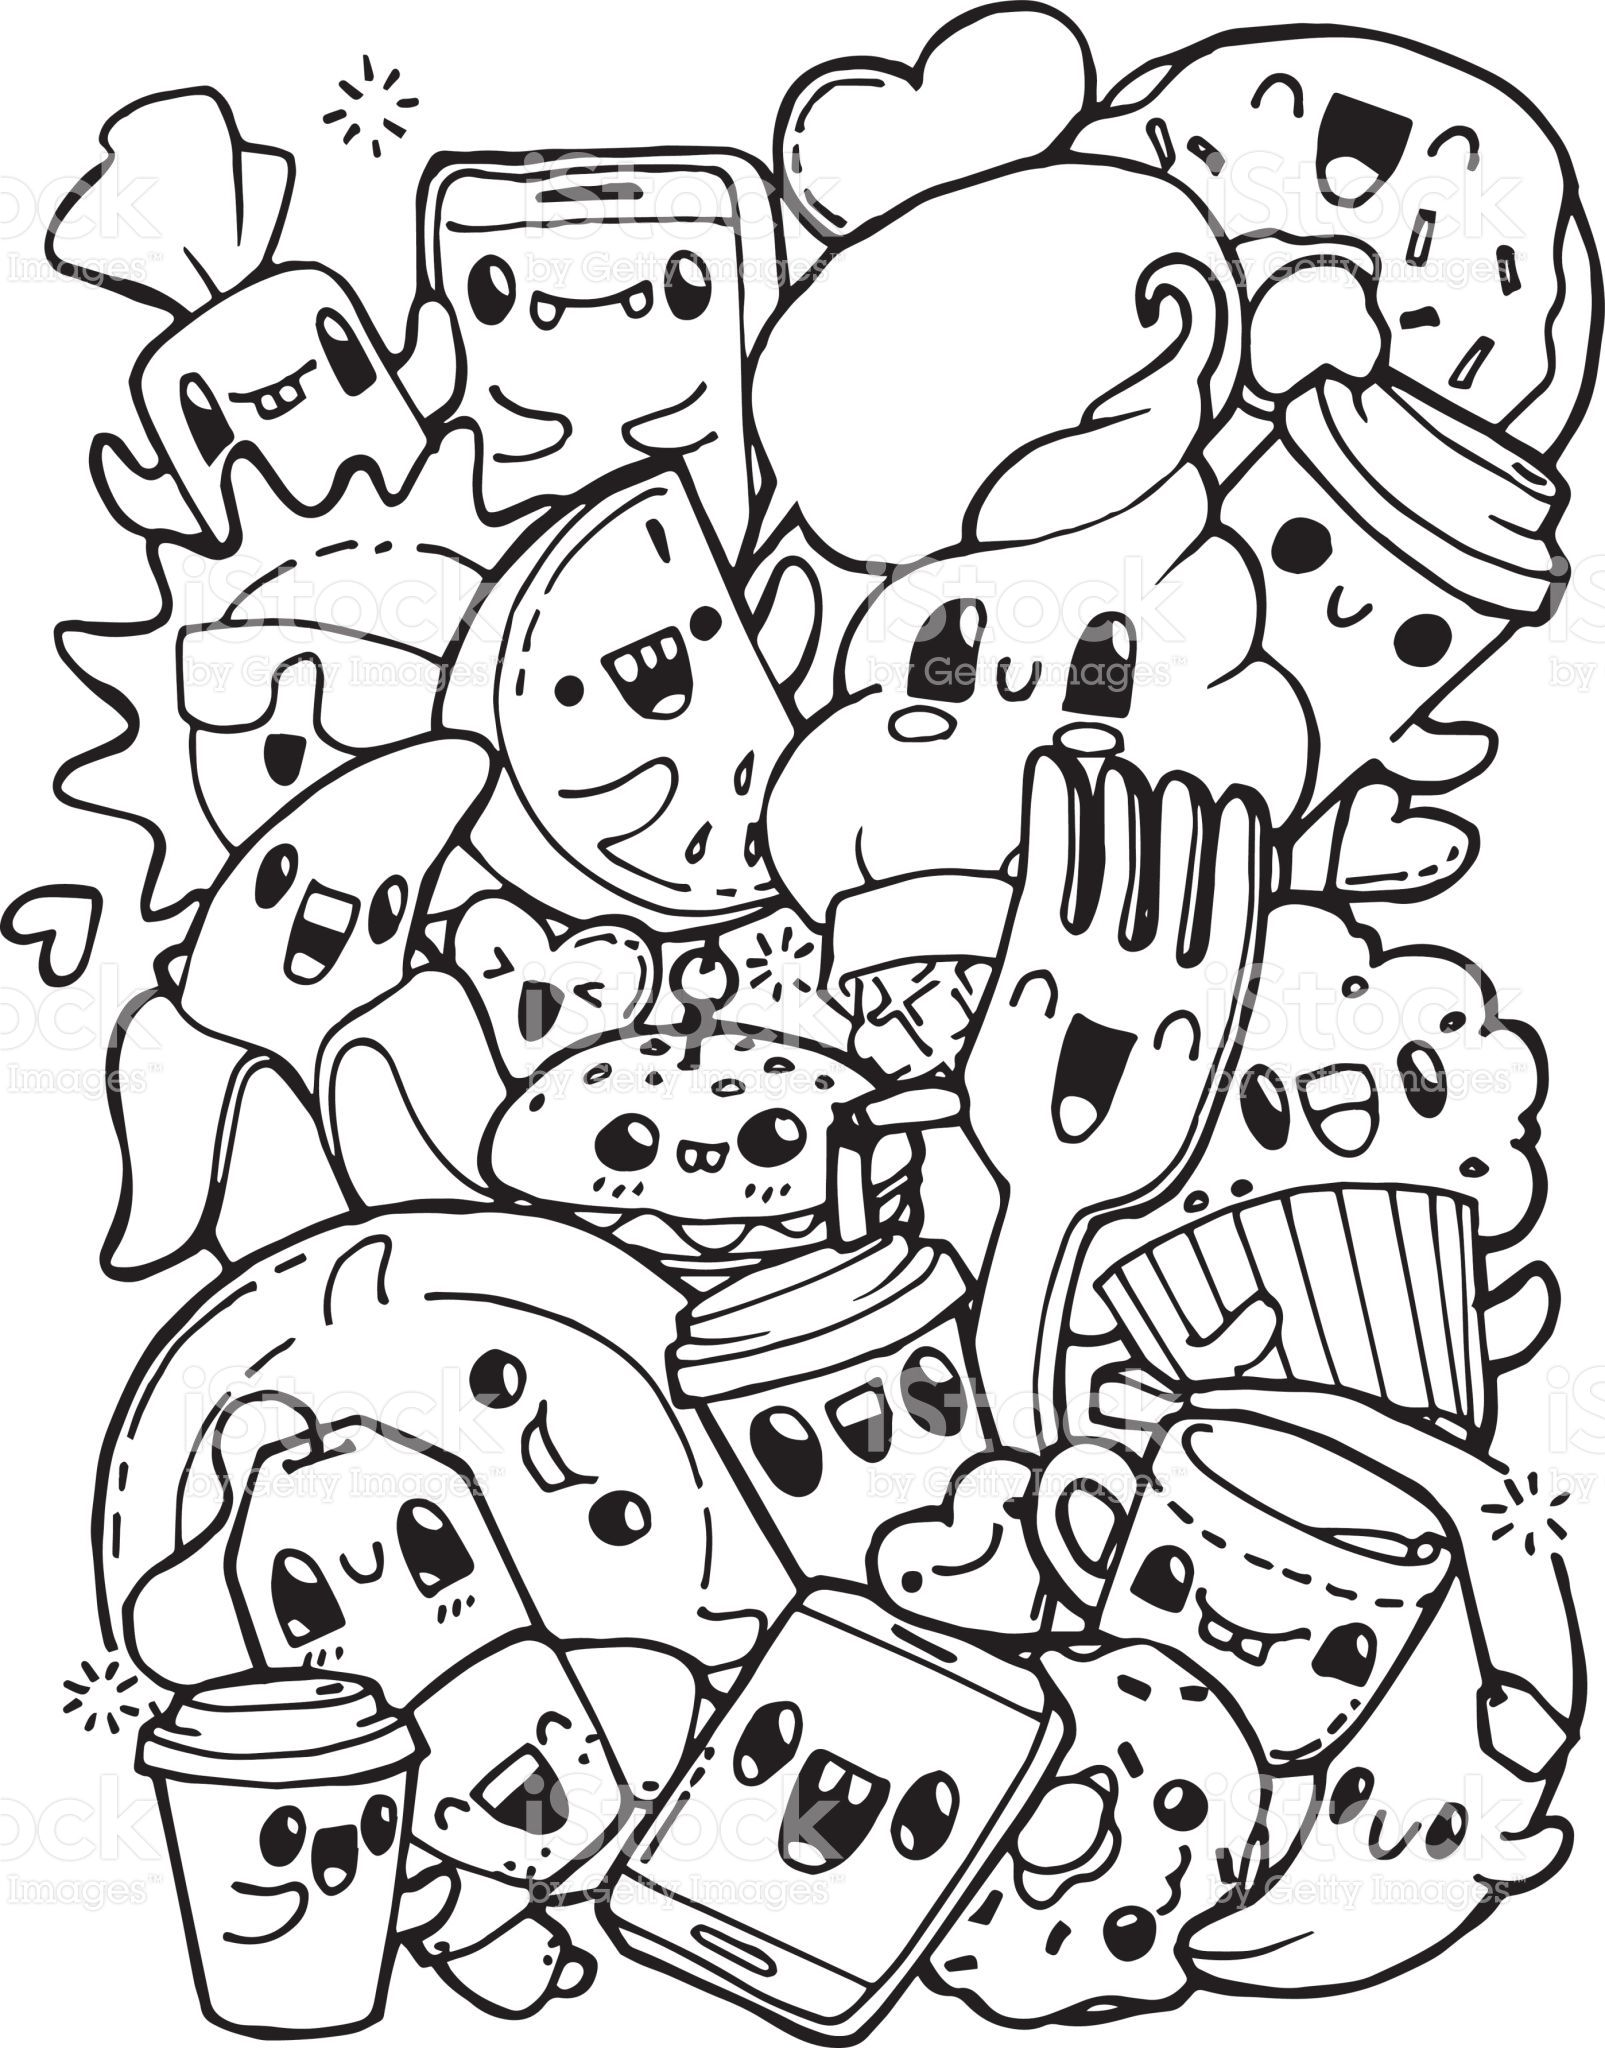 Dining Doodles Breakfast Lunch Dinner Food Coloring Pages For Cute Doodle Art Doodle Coloring Cute Coloring Pages